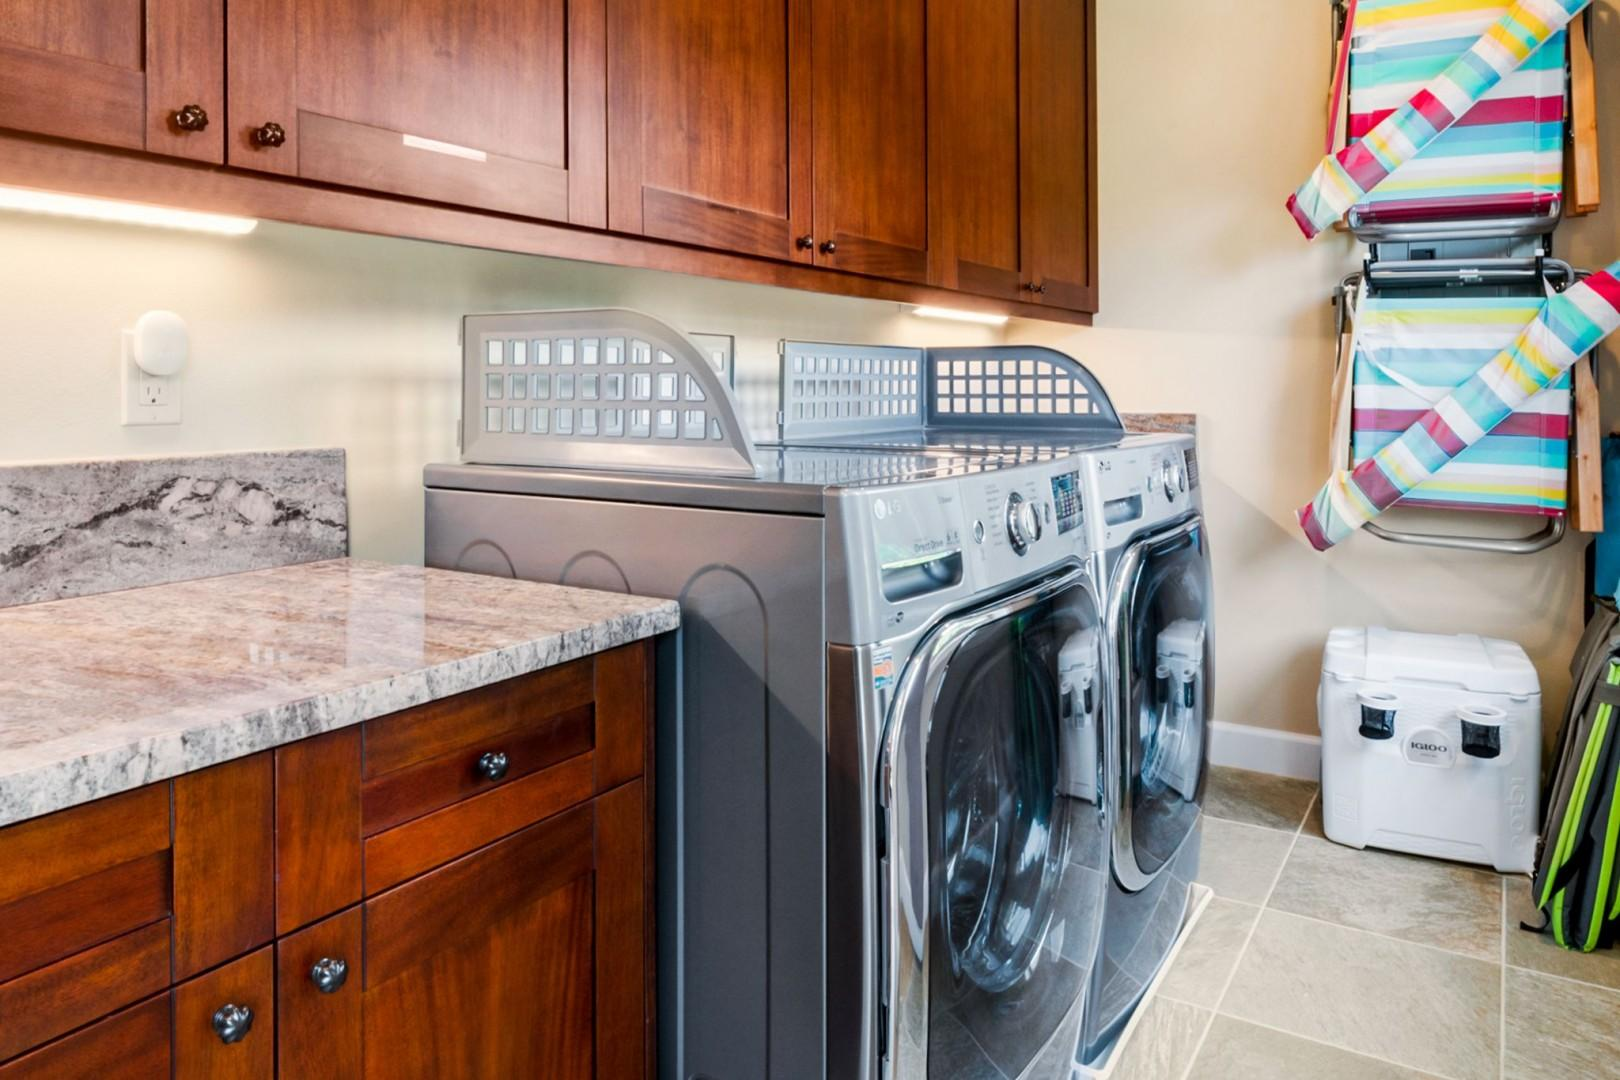 Full sized washer dryer in the well equipped laundry room